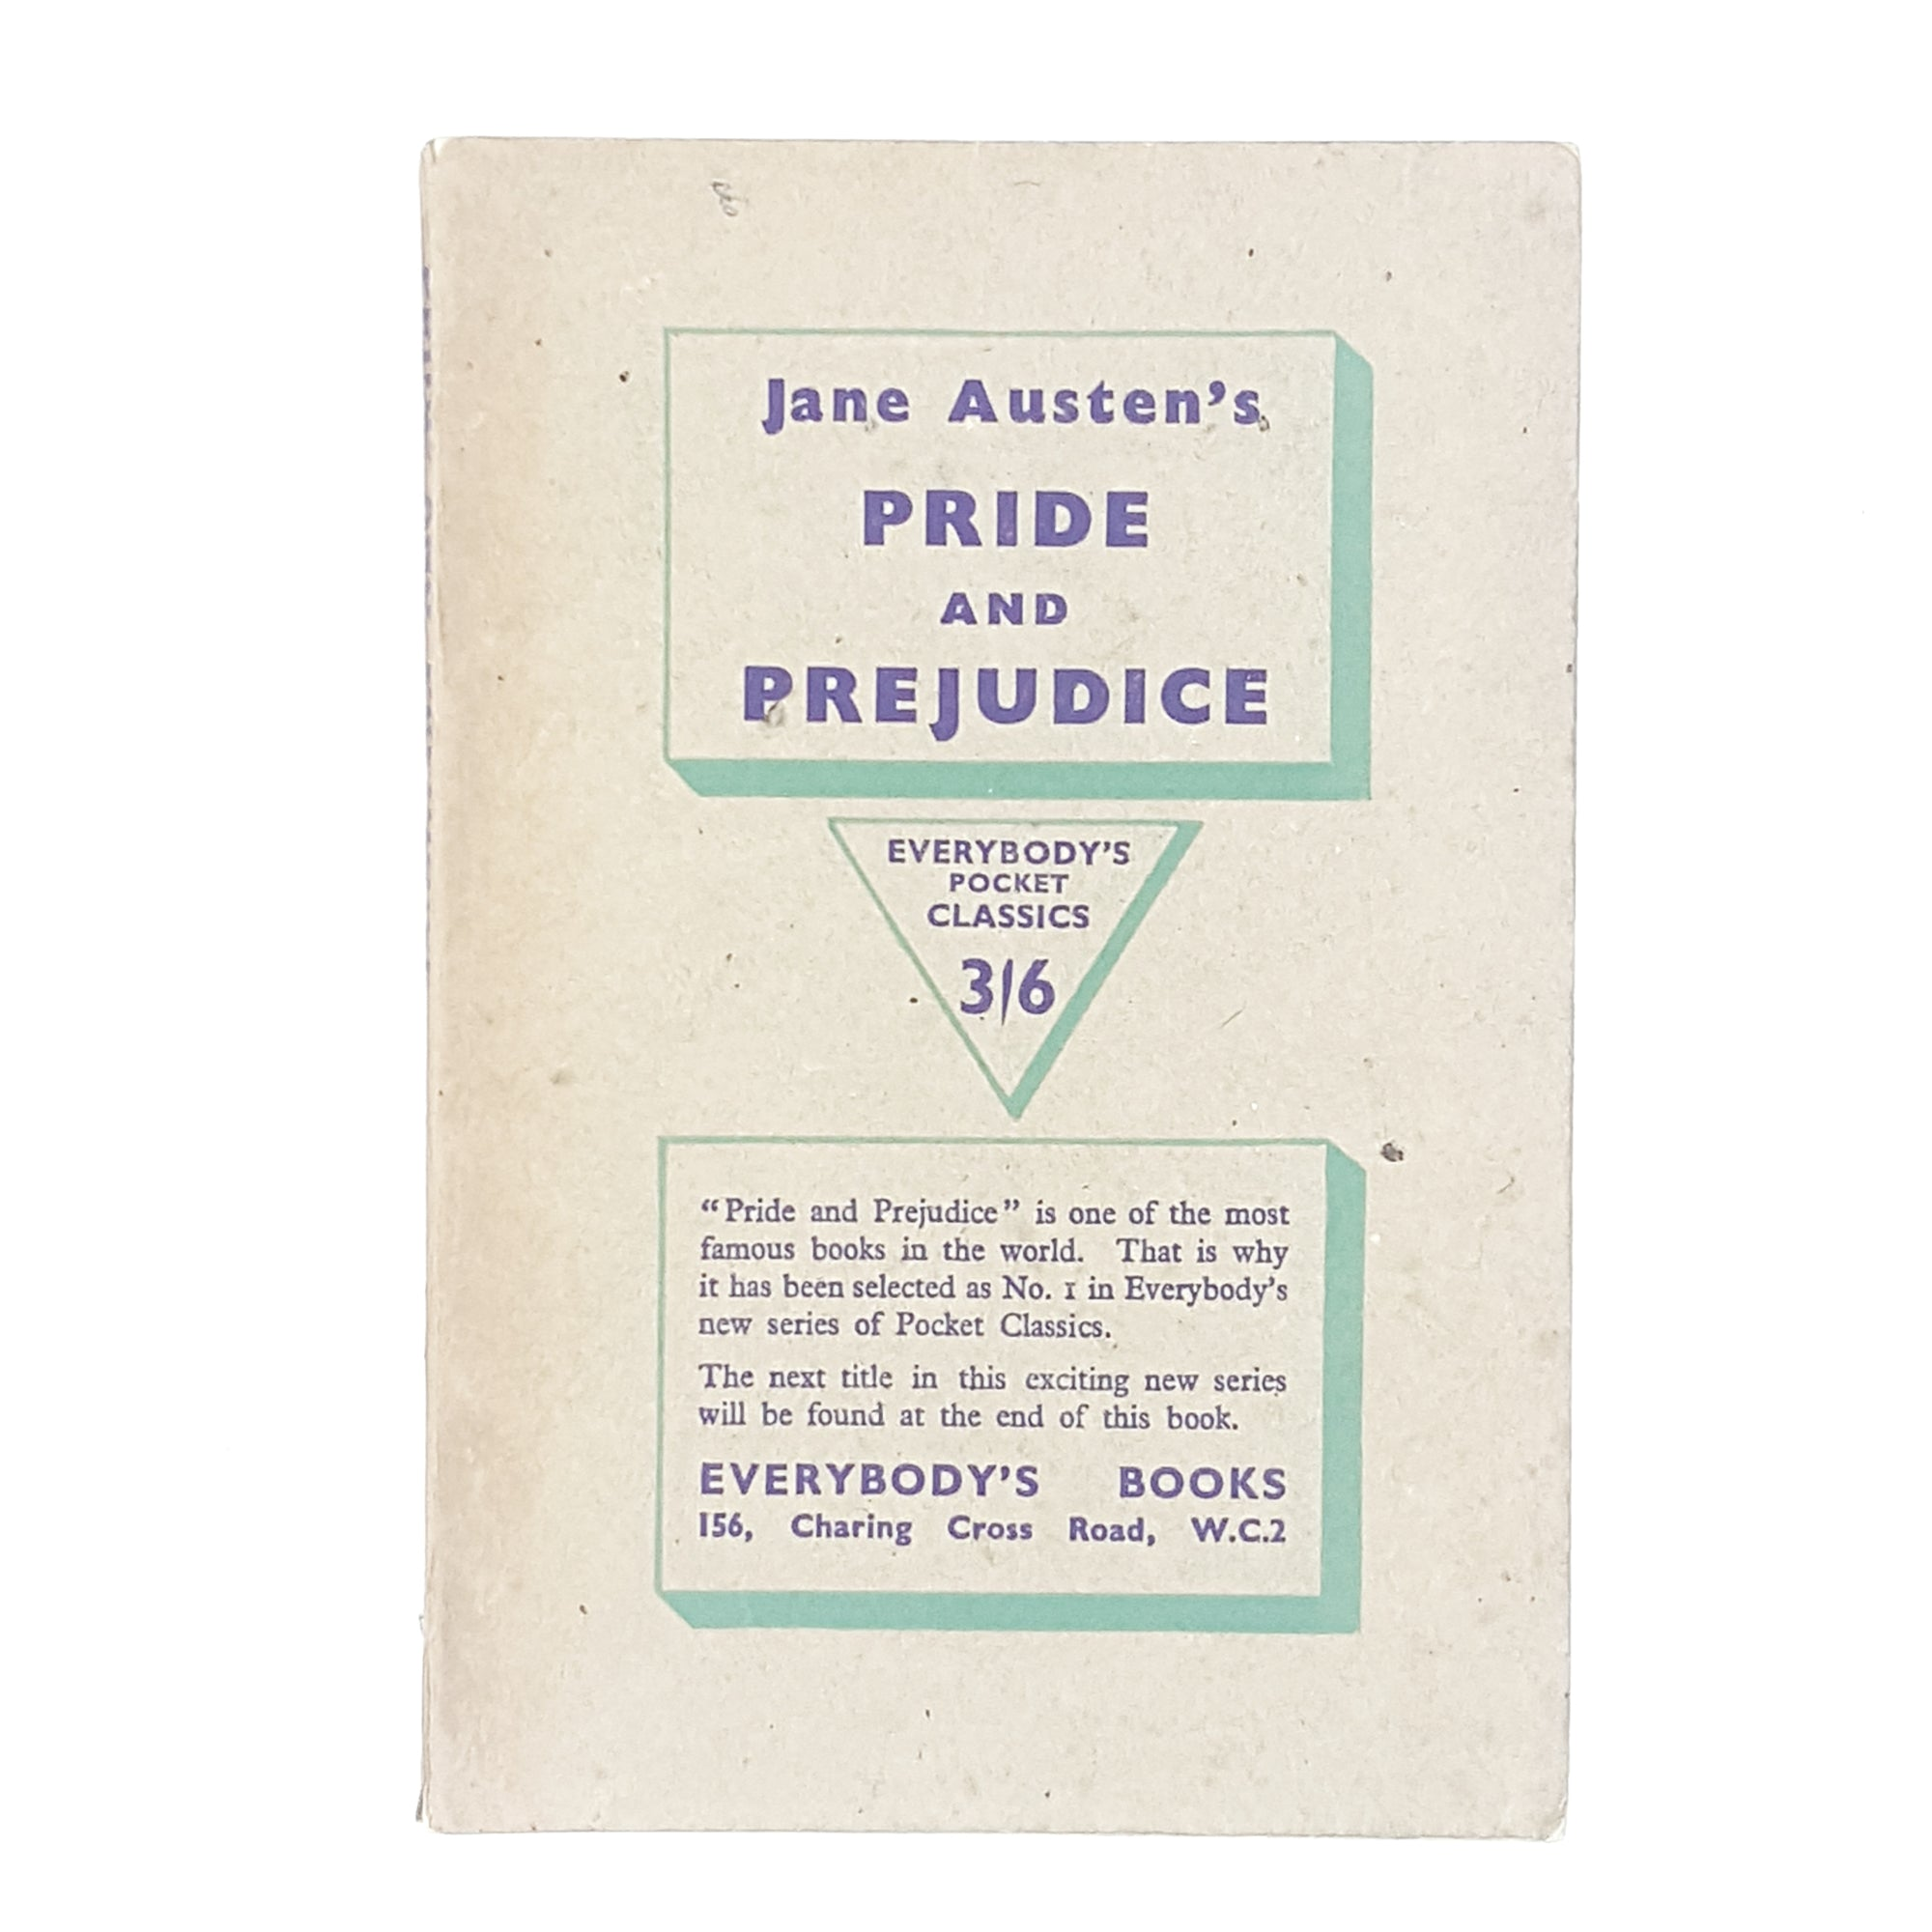 Jane Austen's Pride and Prejudice Everybody's Pocket Classics Edition 1946